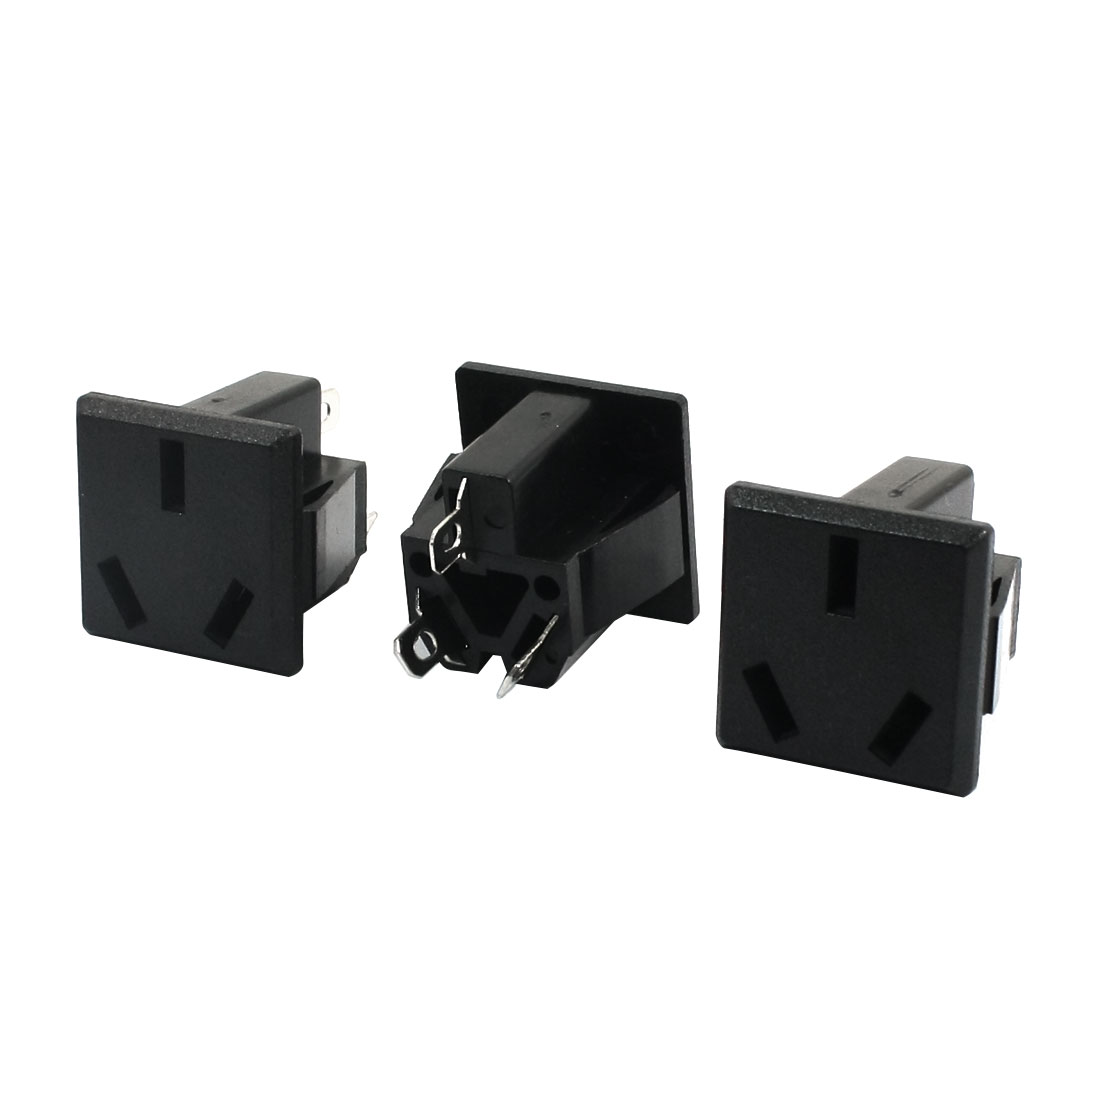 3Pcs AC 125V 15A 3 Pin AU Socket Panel Mounting Square Power Adapter